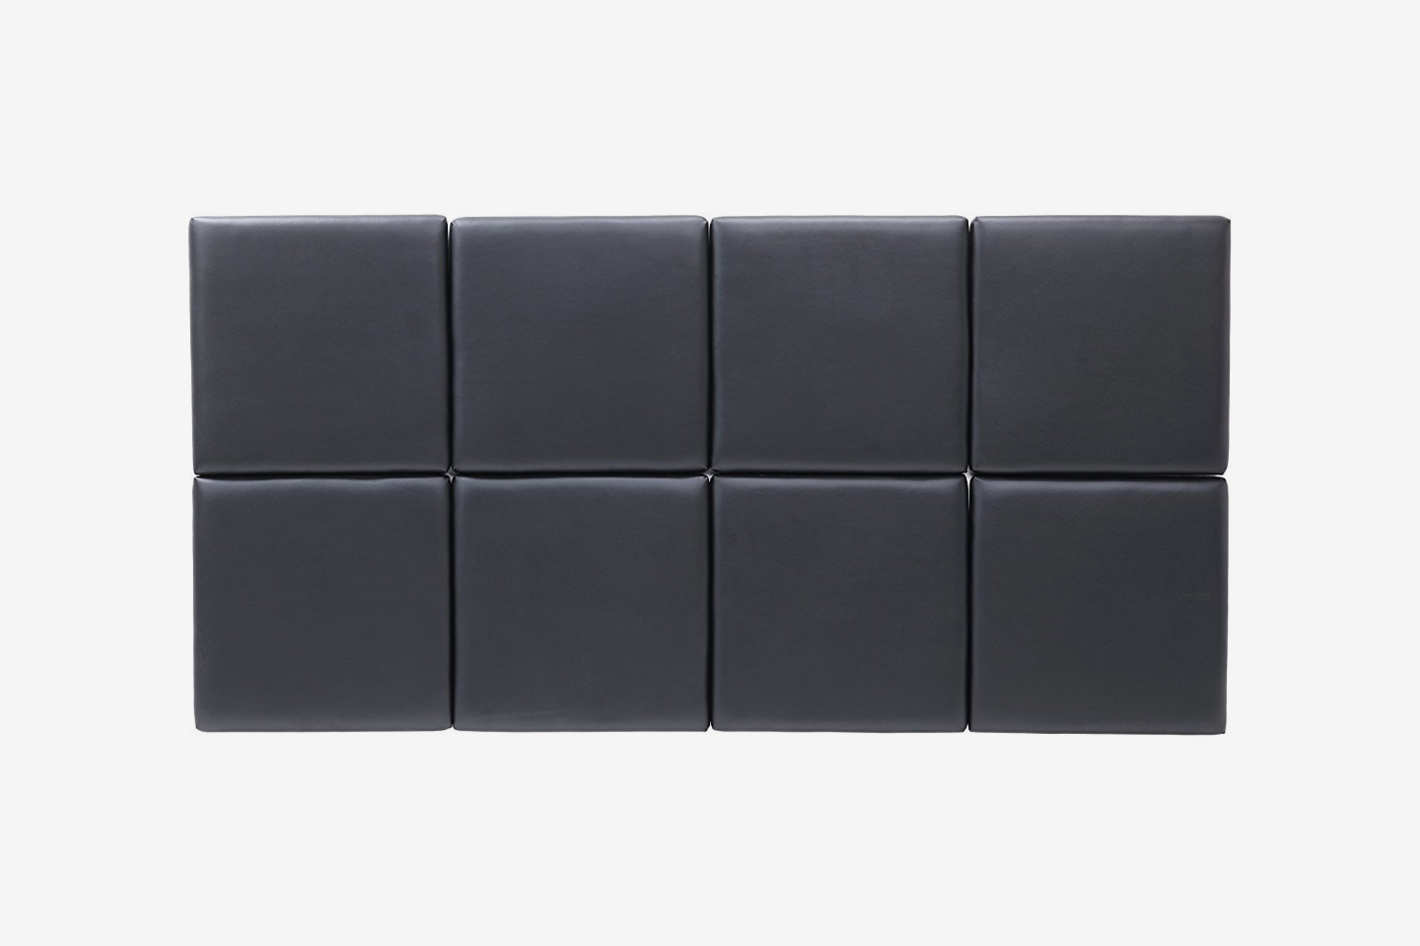 Square, tufted gray headboard tiles